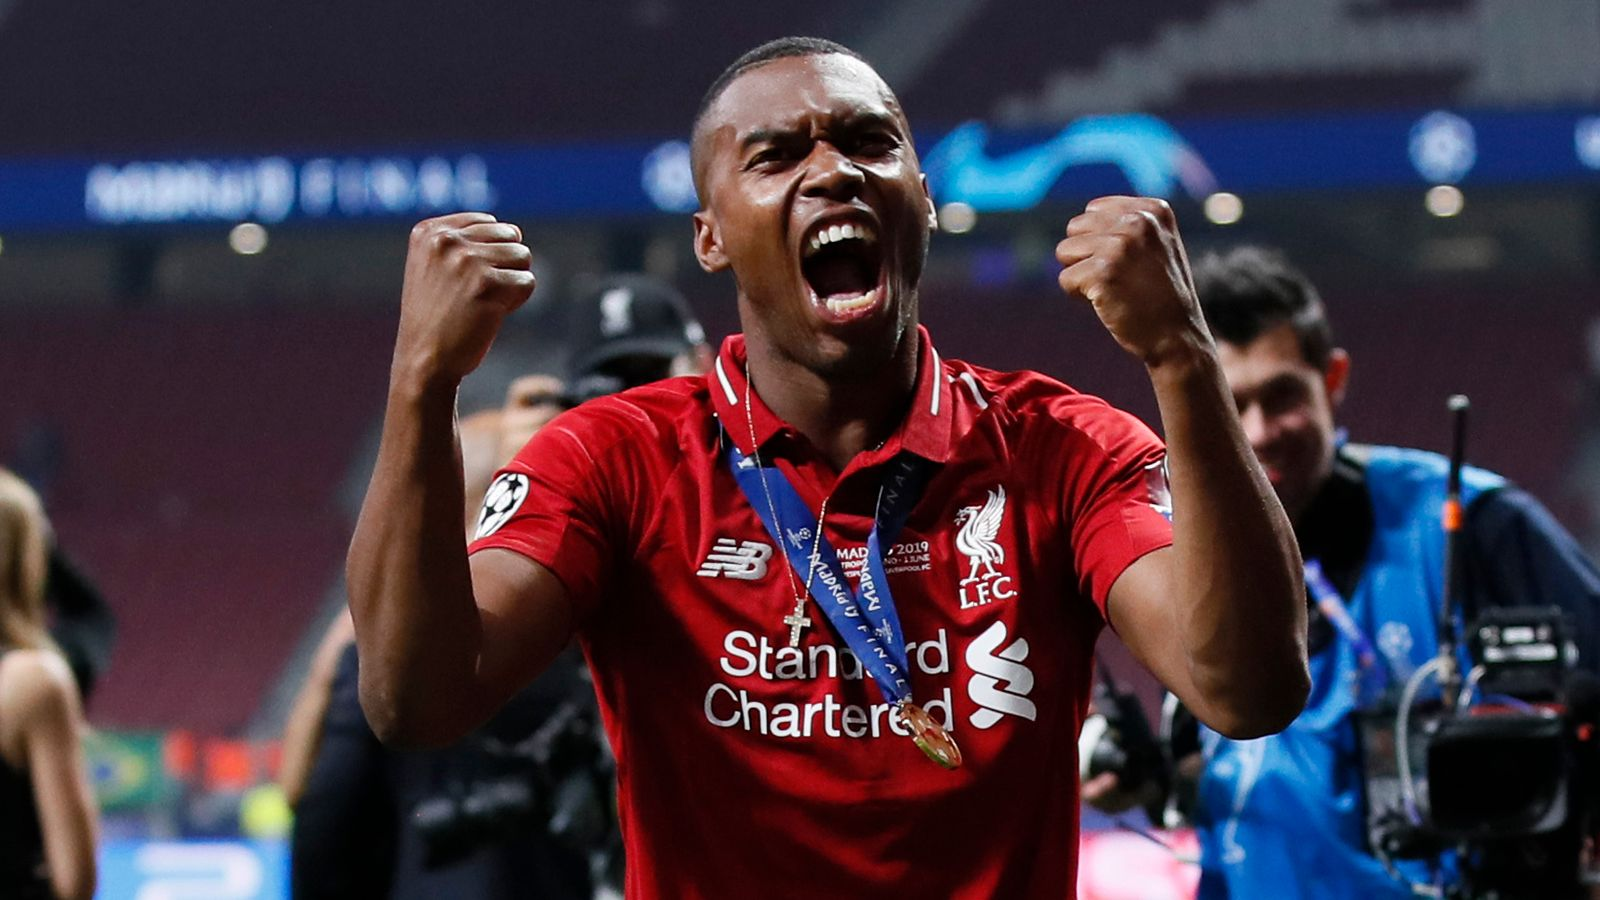 Sturridge joins Perth Glory to end 19-month wait for new club thumbnail